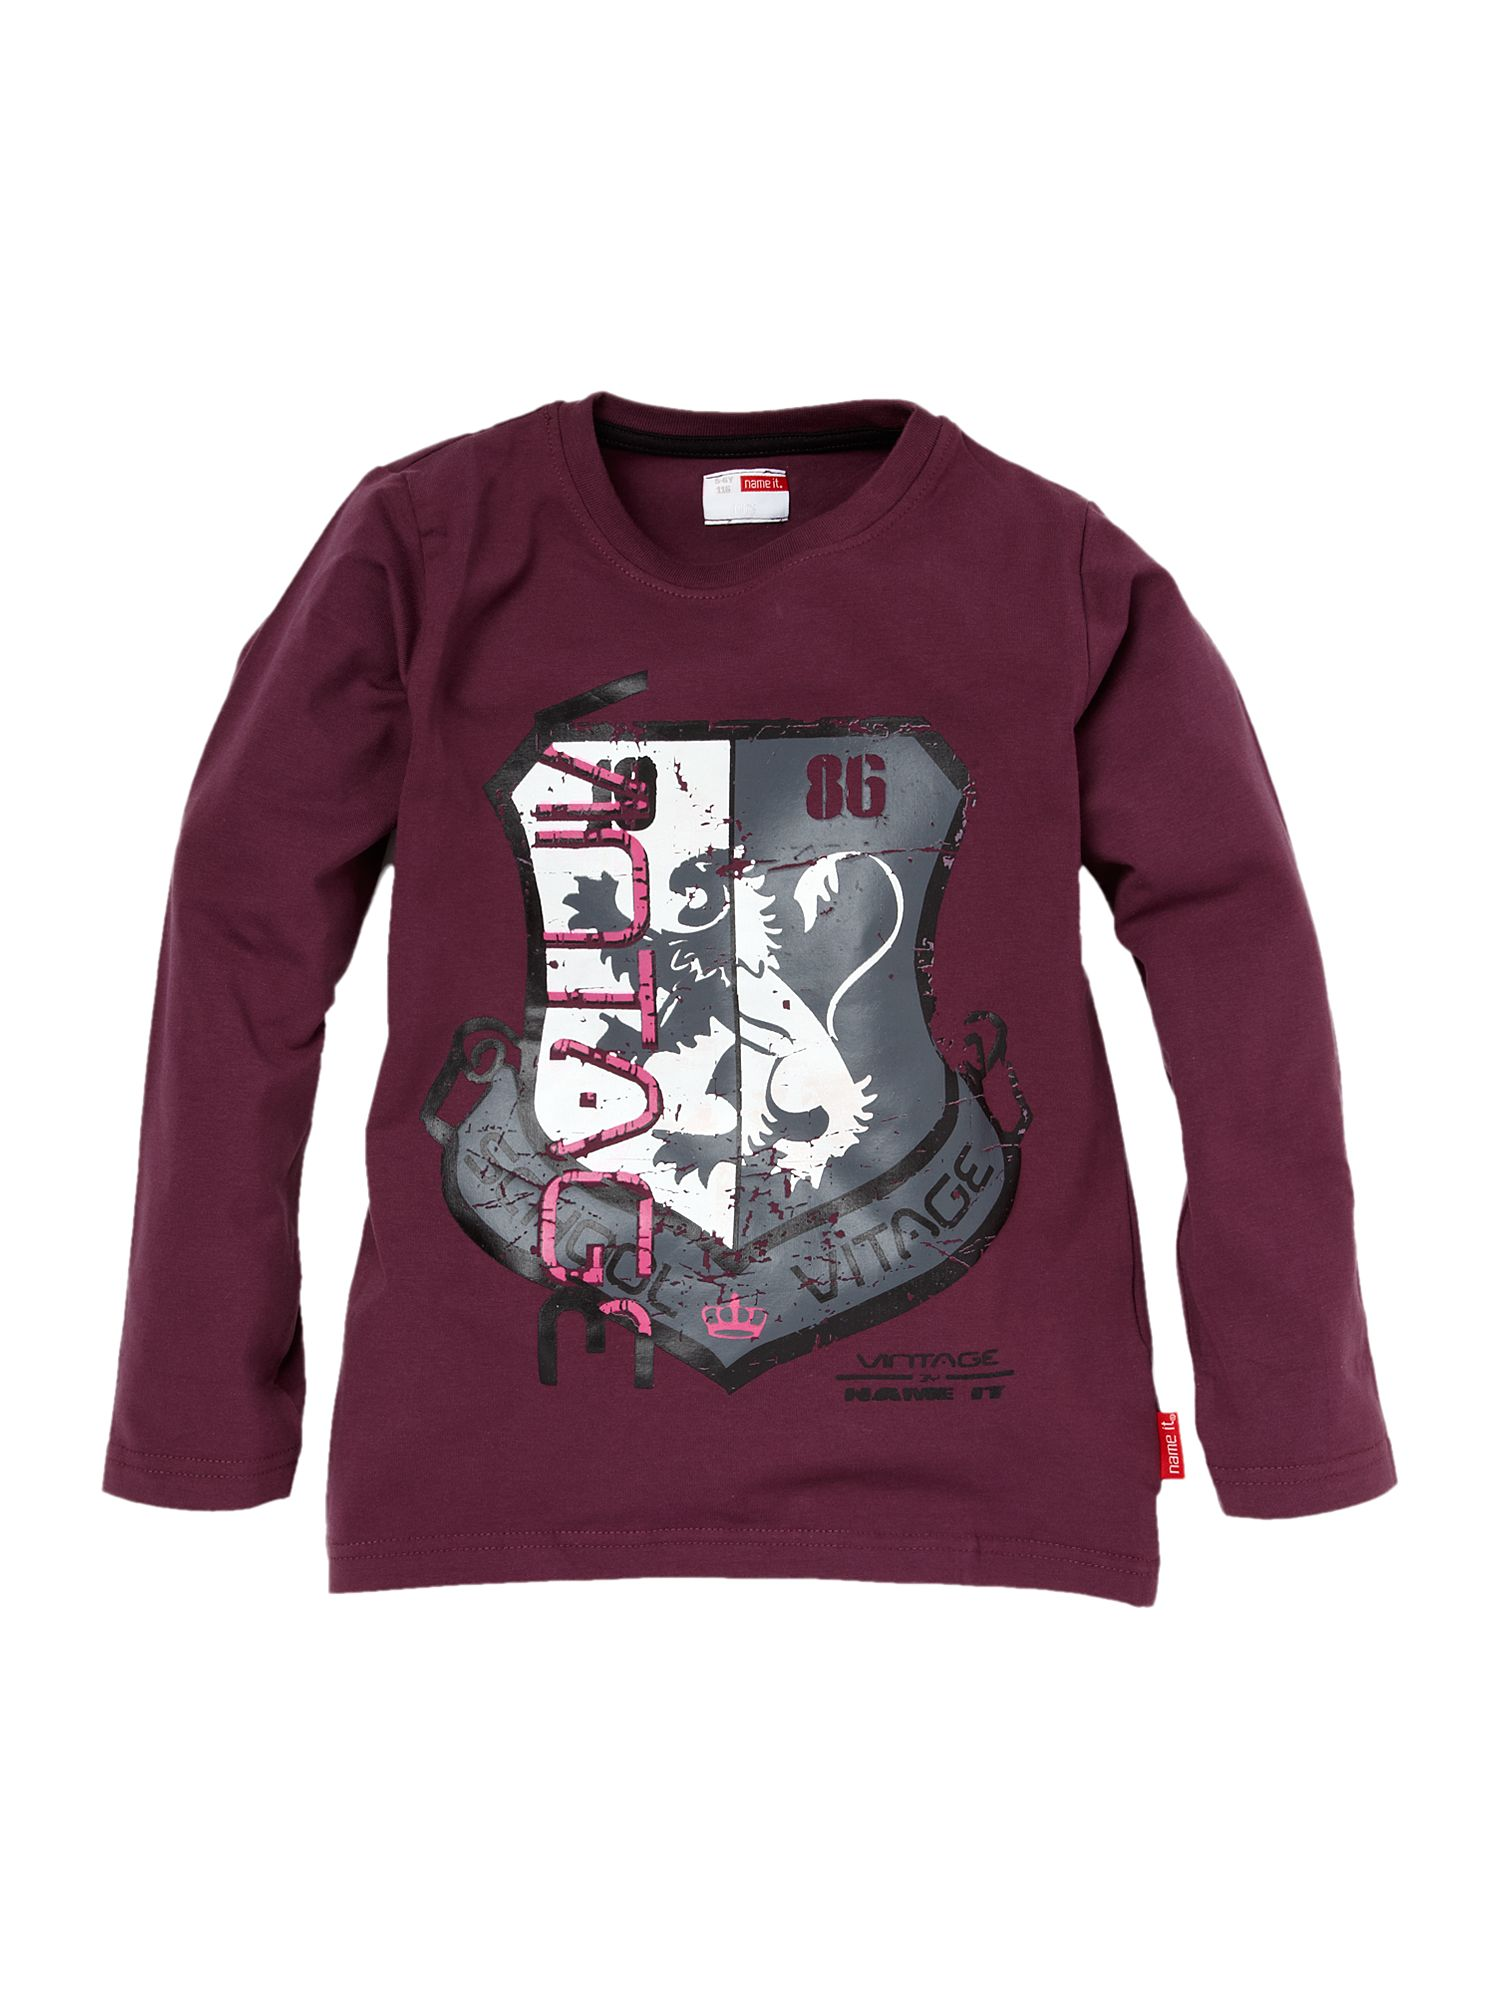 Name It Long-sleeved shield printed T-shirt Burgundy product image